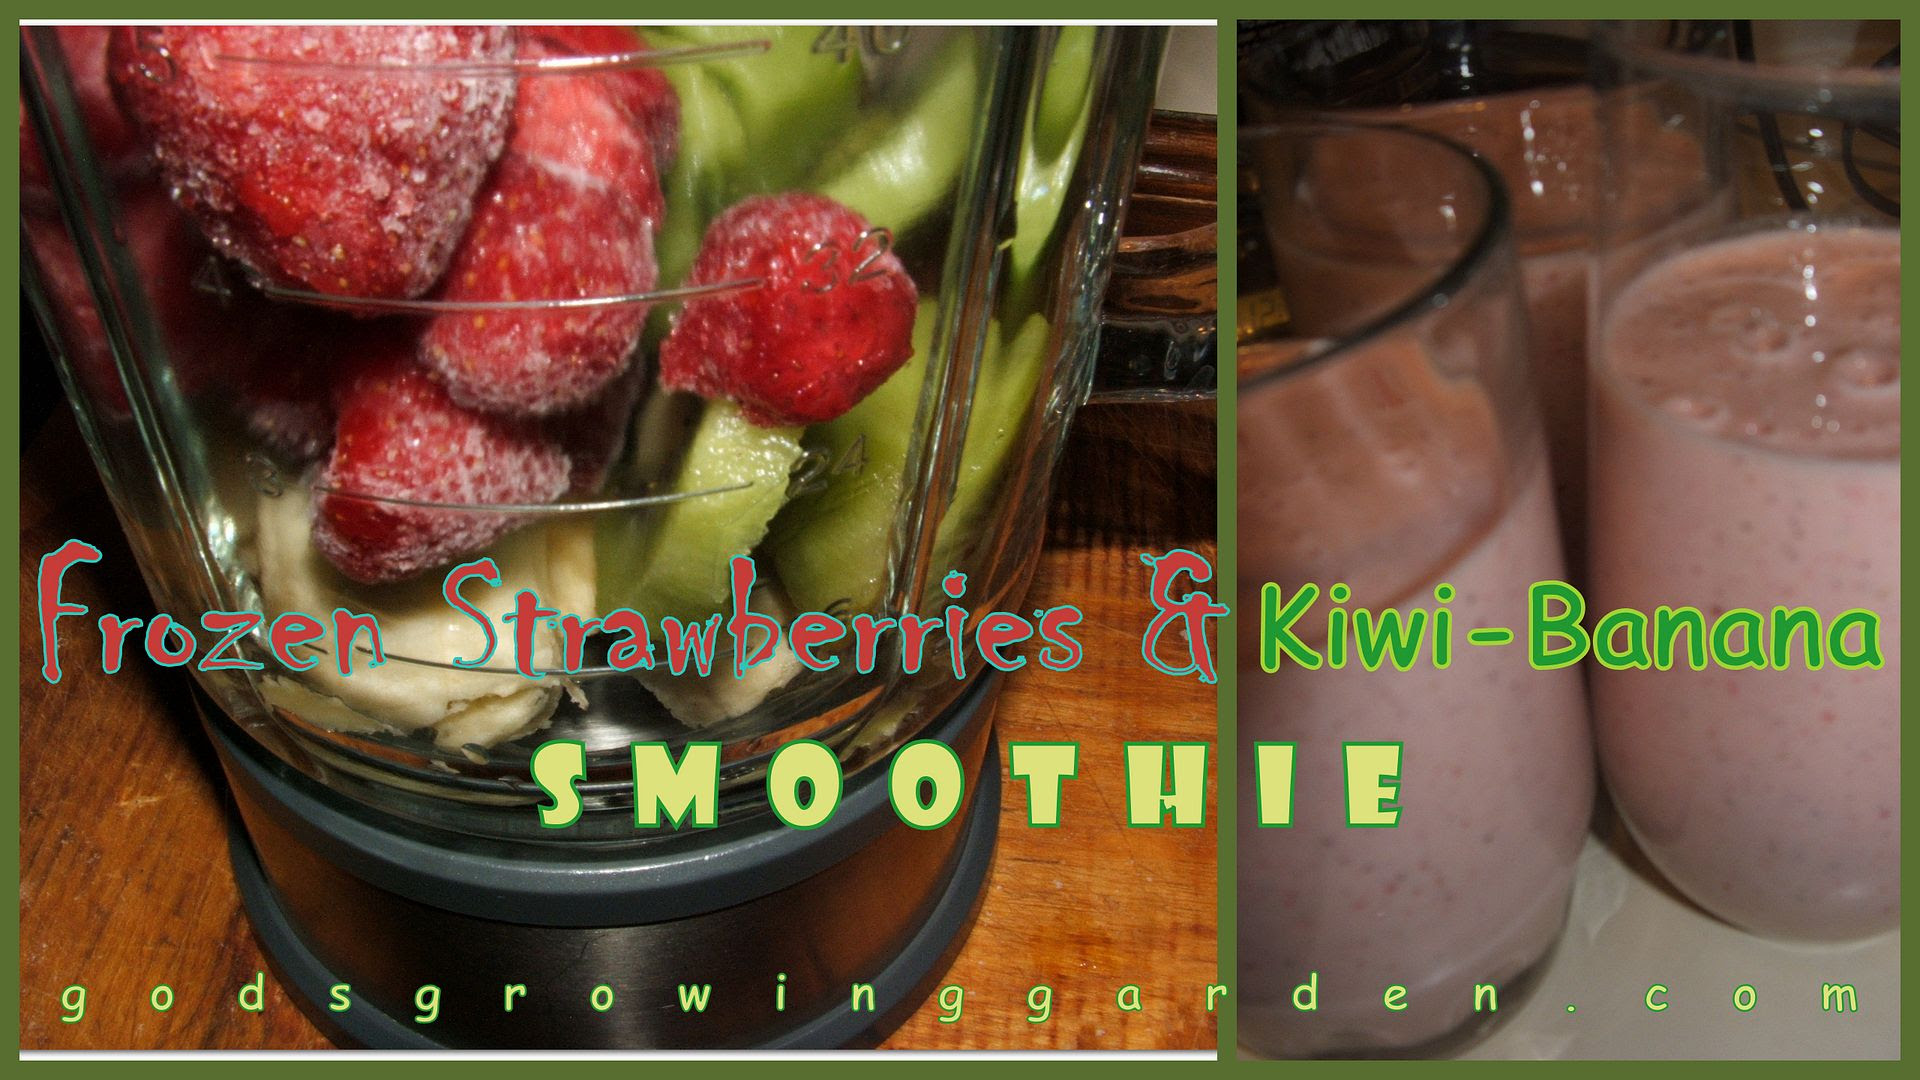 Frozen Strawberry & Kiwi-Banana Smoothie by Angie Ouellette-Tower photo 2014-01-23_zps47aeac33.jpg